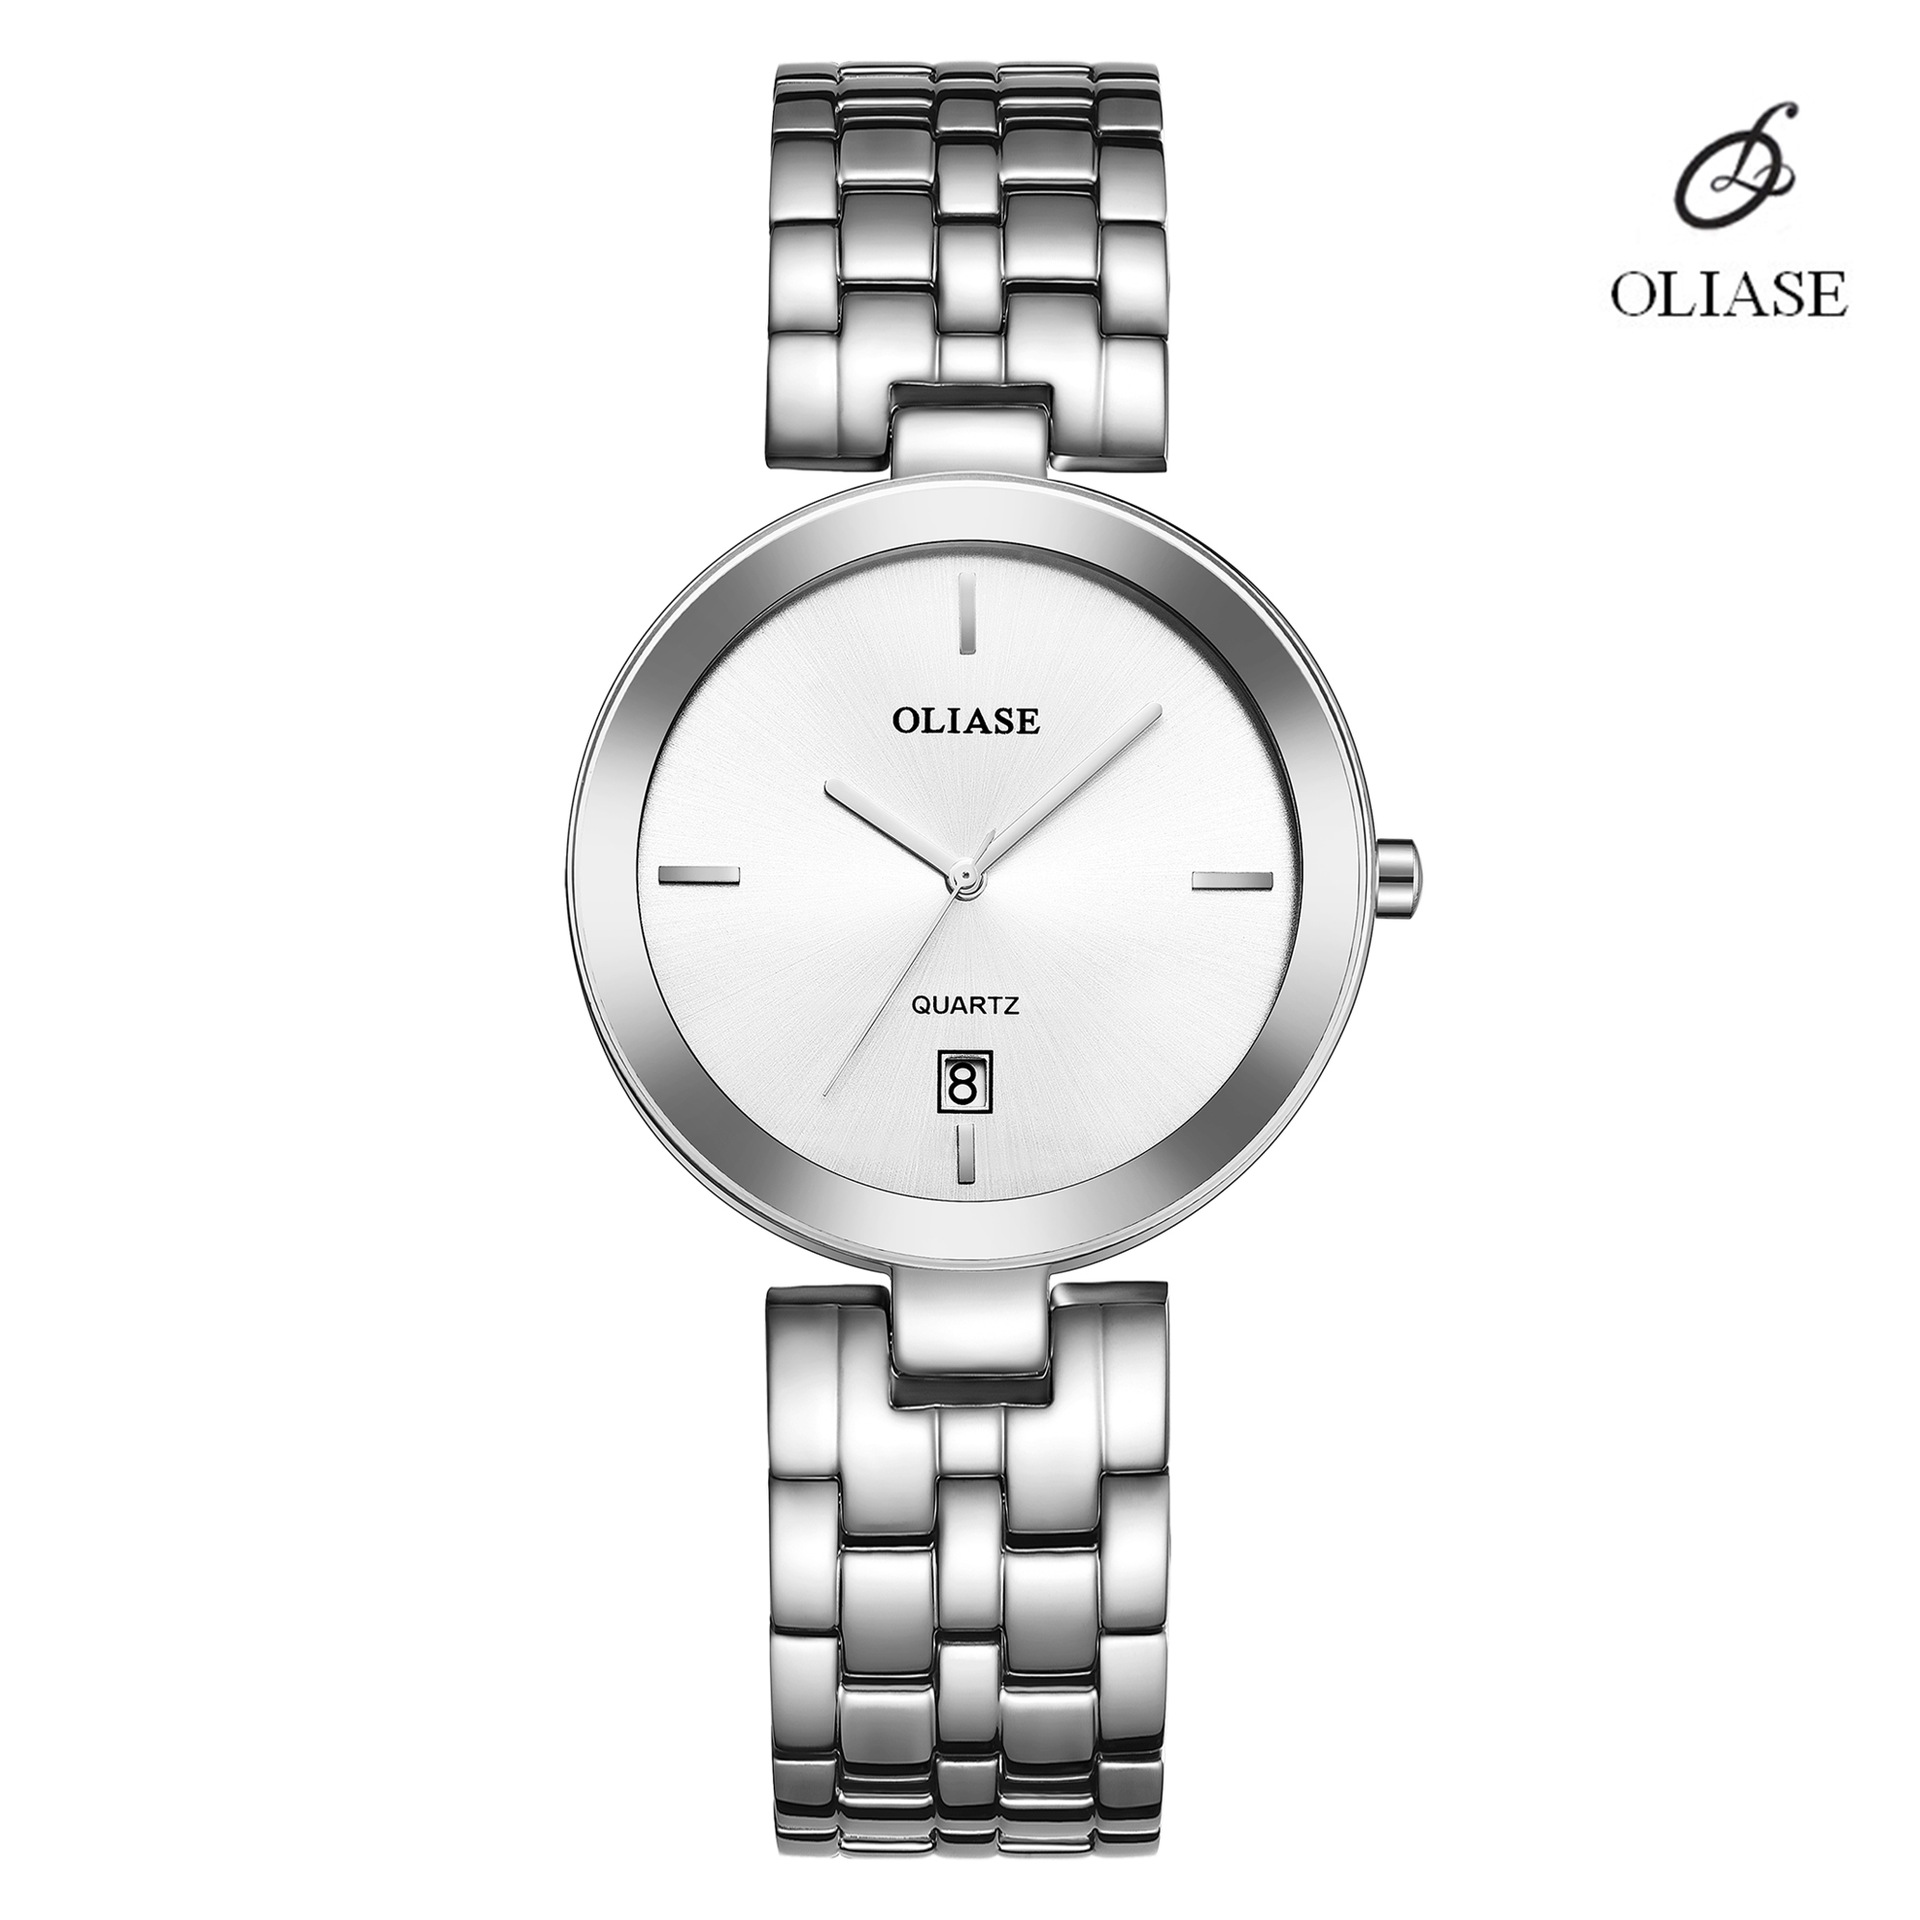 Reloj Mujer Steel watch woman rose gold watch OLIASE women top famous Brand Luxury Casual Quartz Watch relogio feminino shengke top brand luxury watch woman fashion steel quartz watch female monterrey woman watch relogio feminino reloj mujer 2017